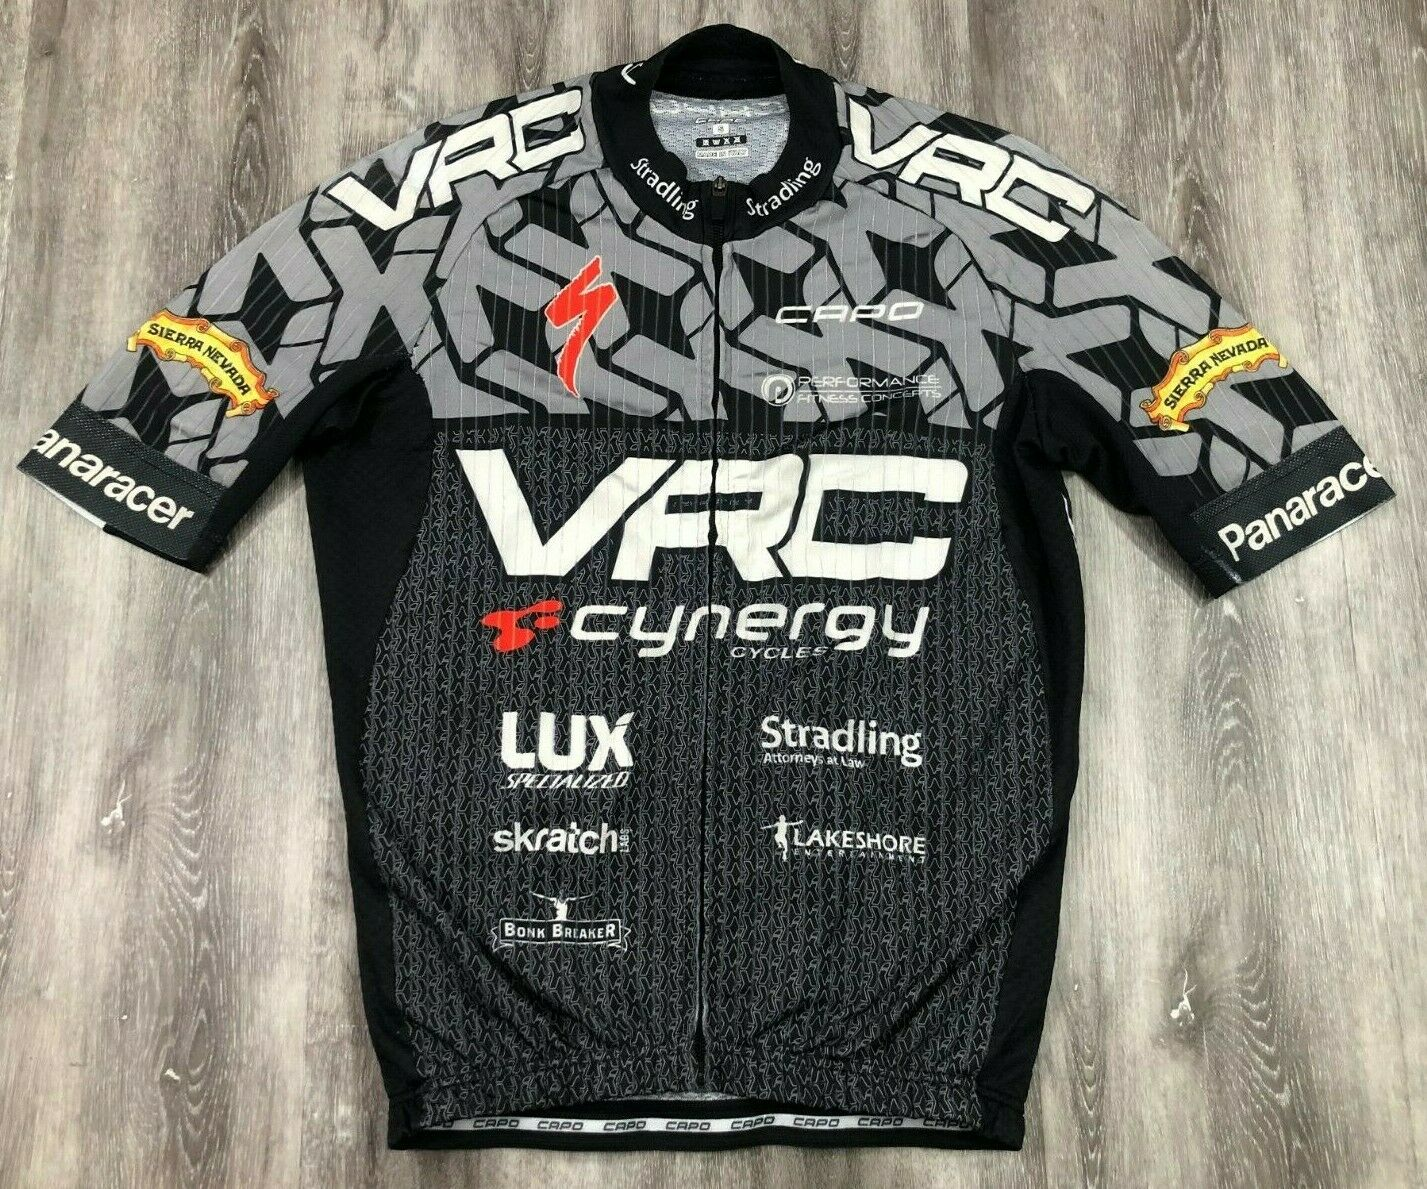 CAPO VRC Cynergy Cycles Short Sleeve Full Zip Bike Cycling Jersey S ITALY